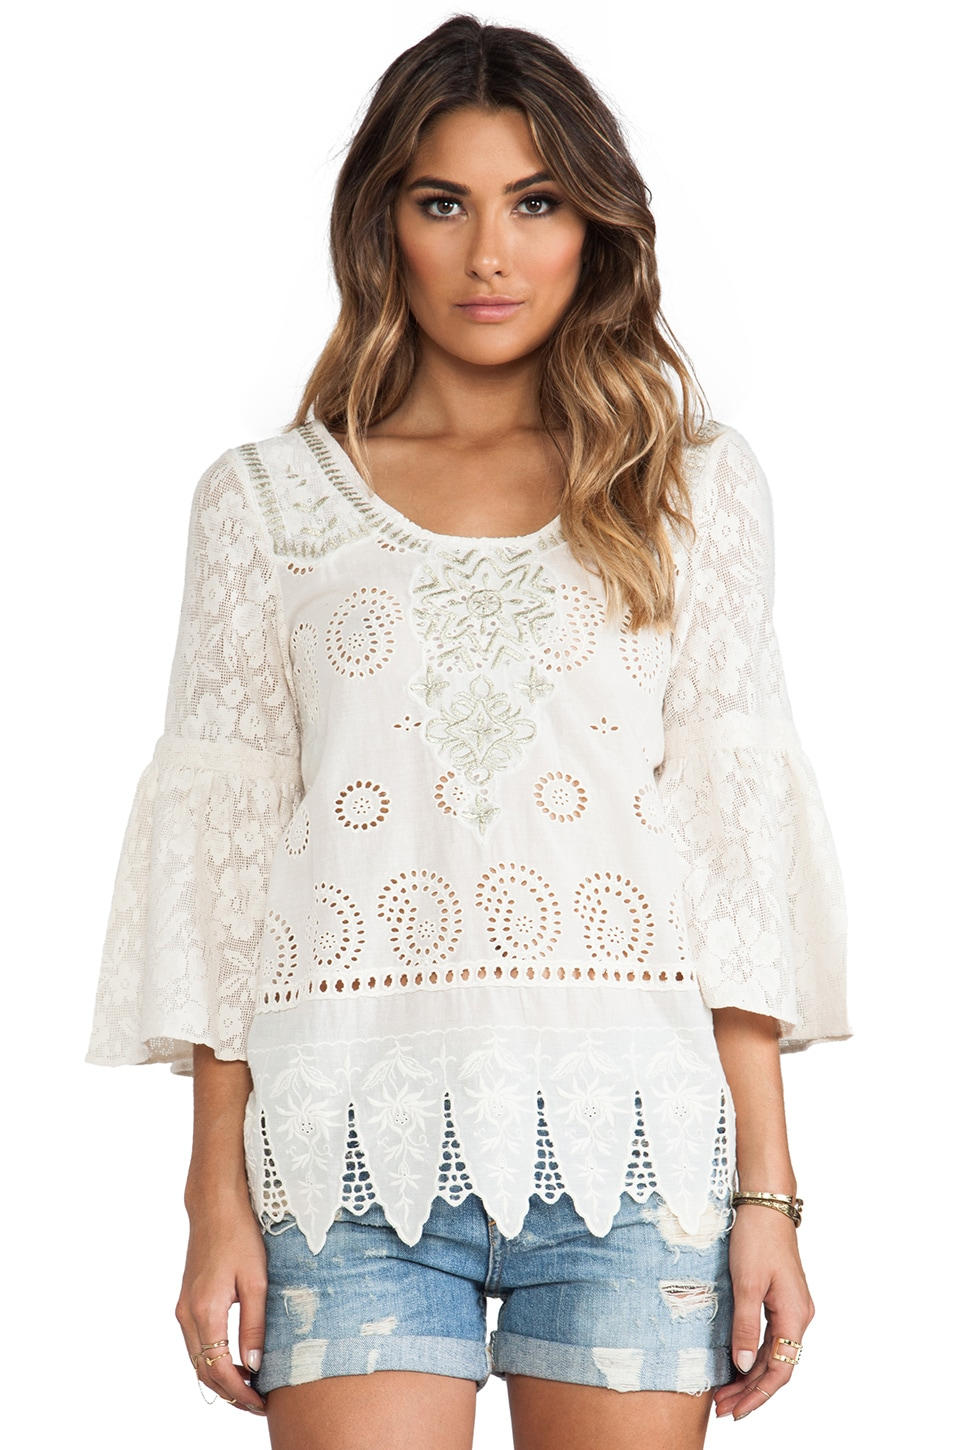 Free People Lolita Tunic in Ivory